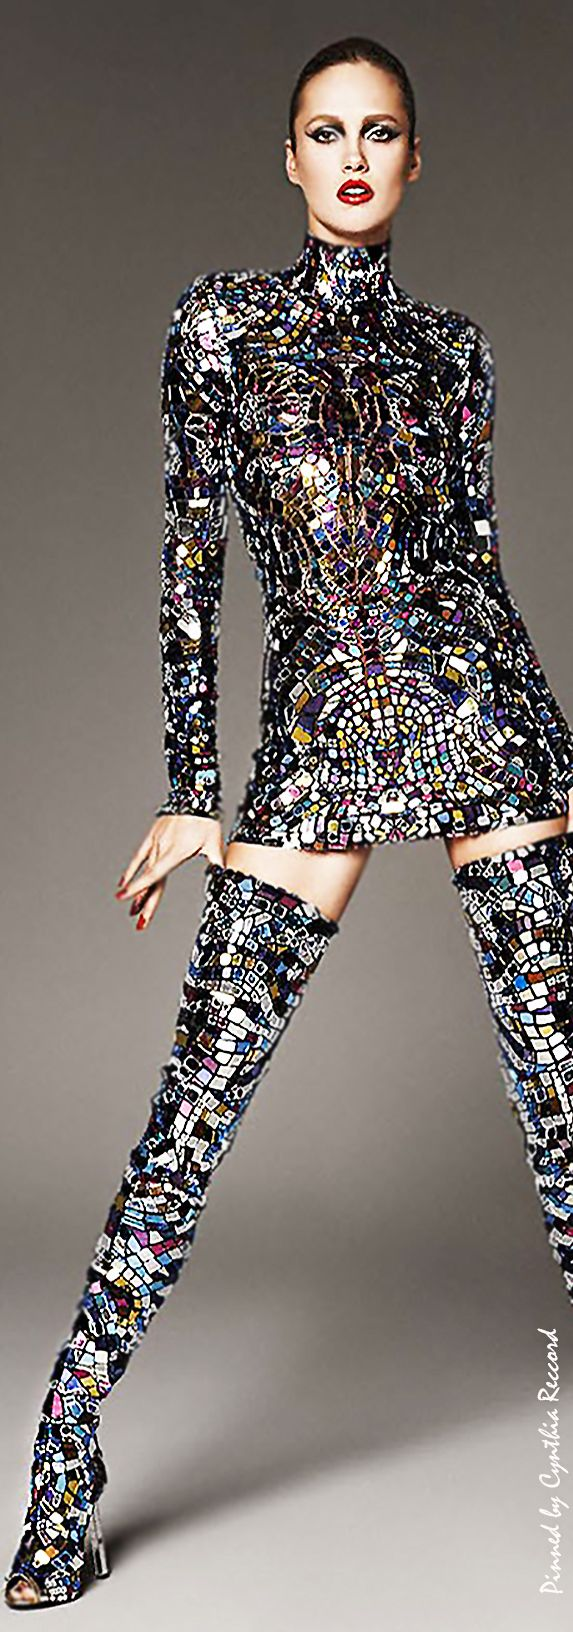 Karmen Pedaru in Tom Ford's Multicolor broken-mirror Mini Dress & Thigh-High Boots SS 2014 | cynthia reccord